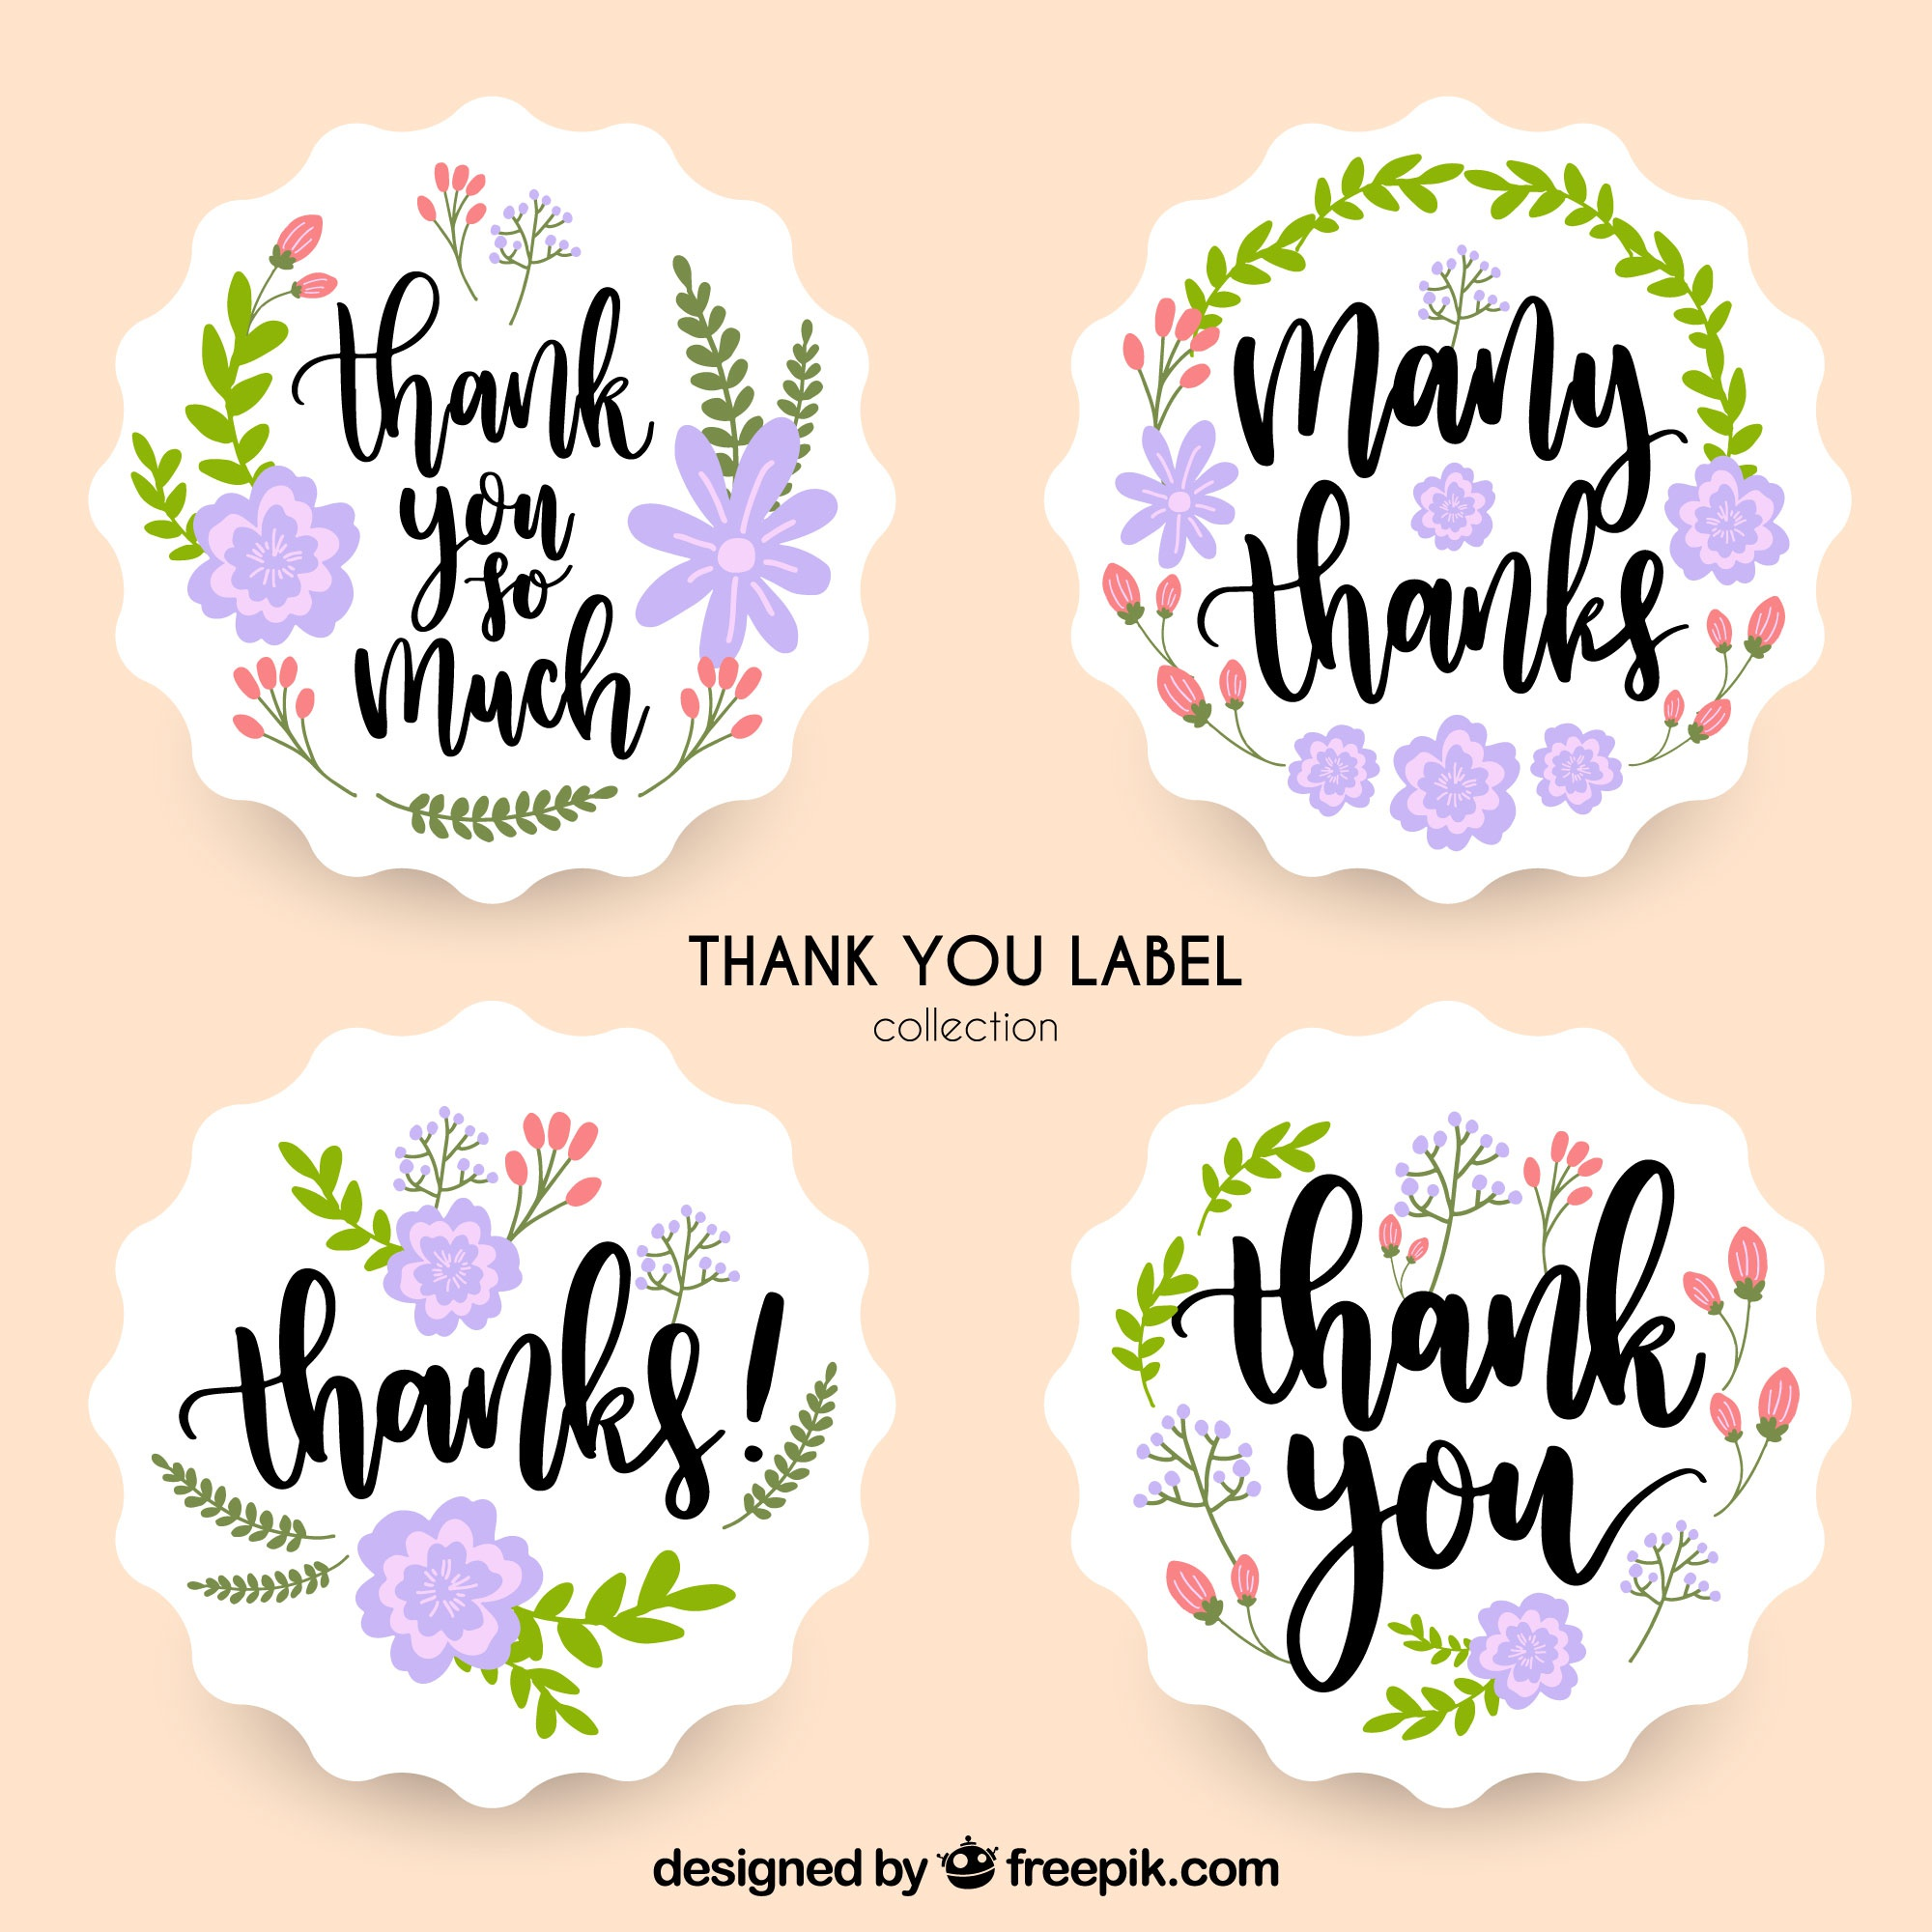 Floral thank you label collection